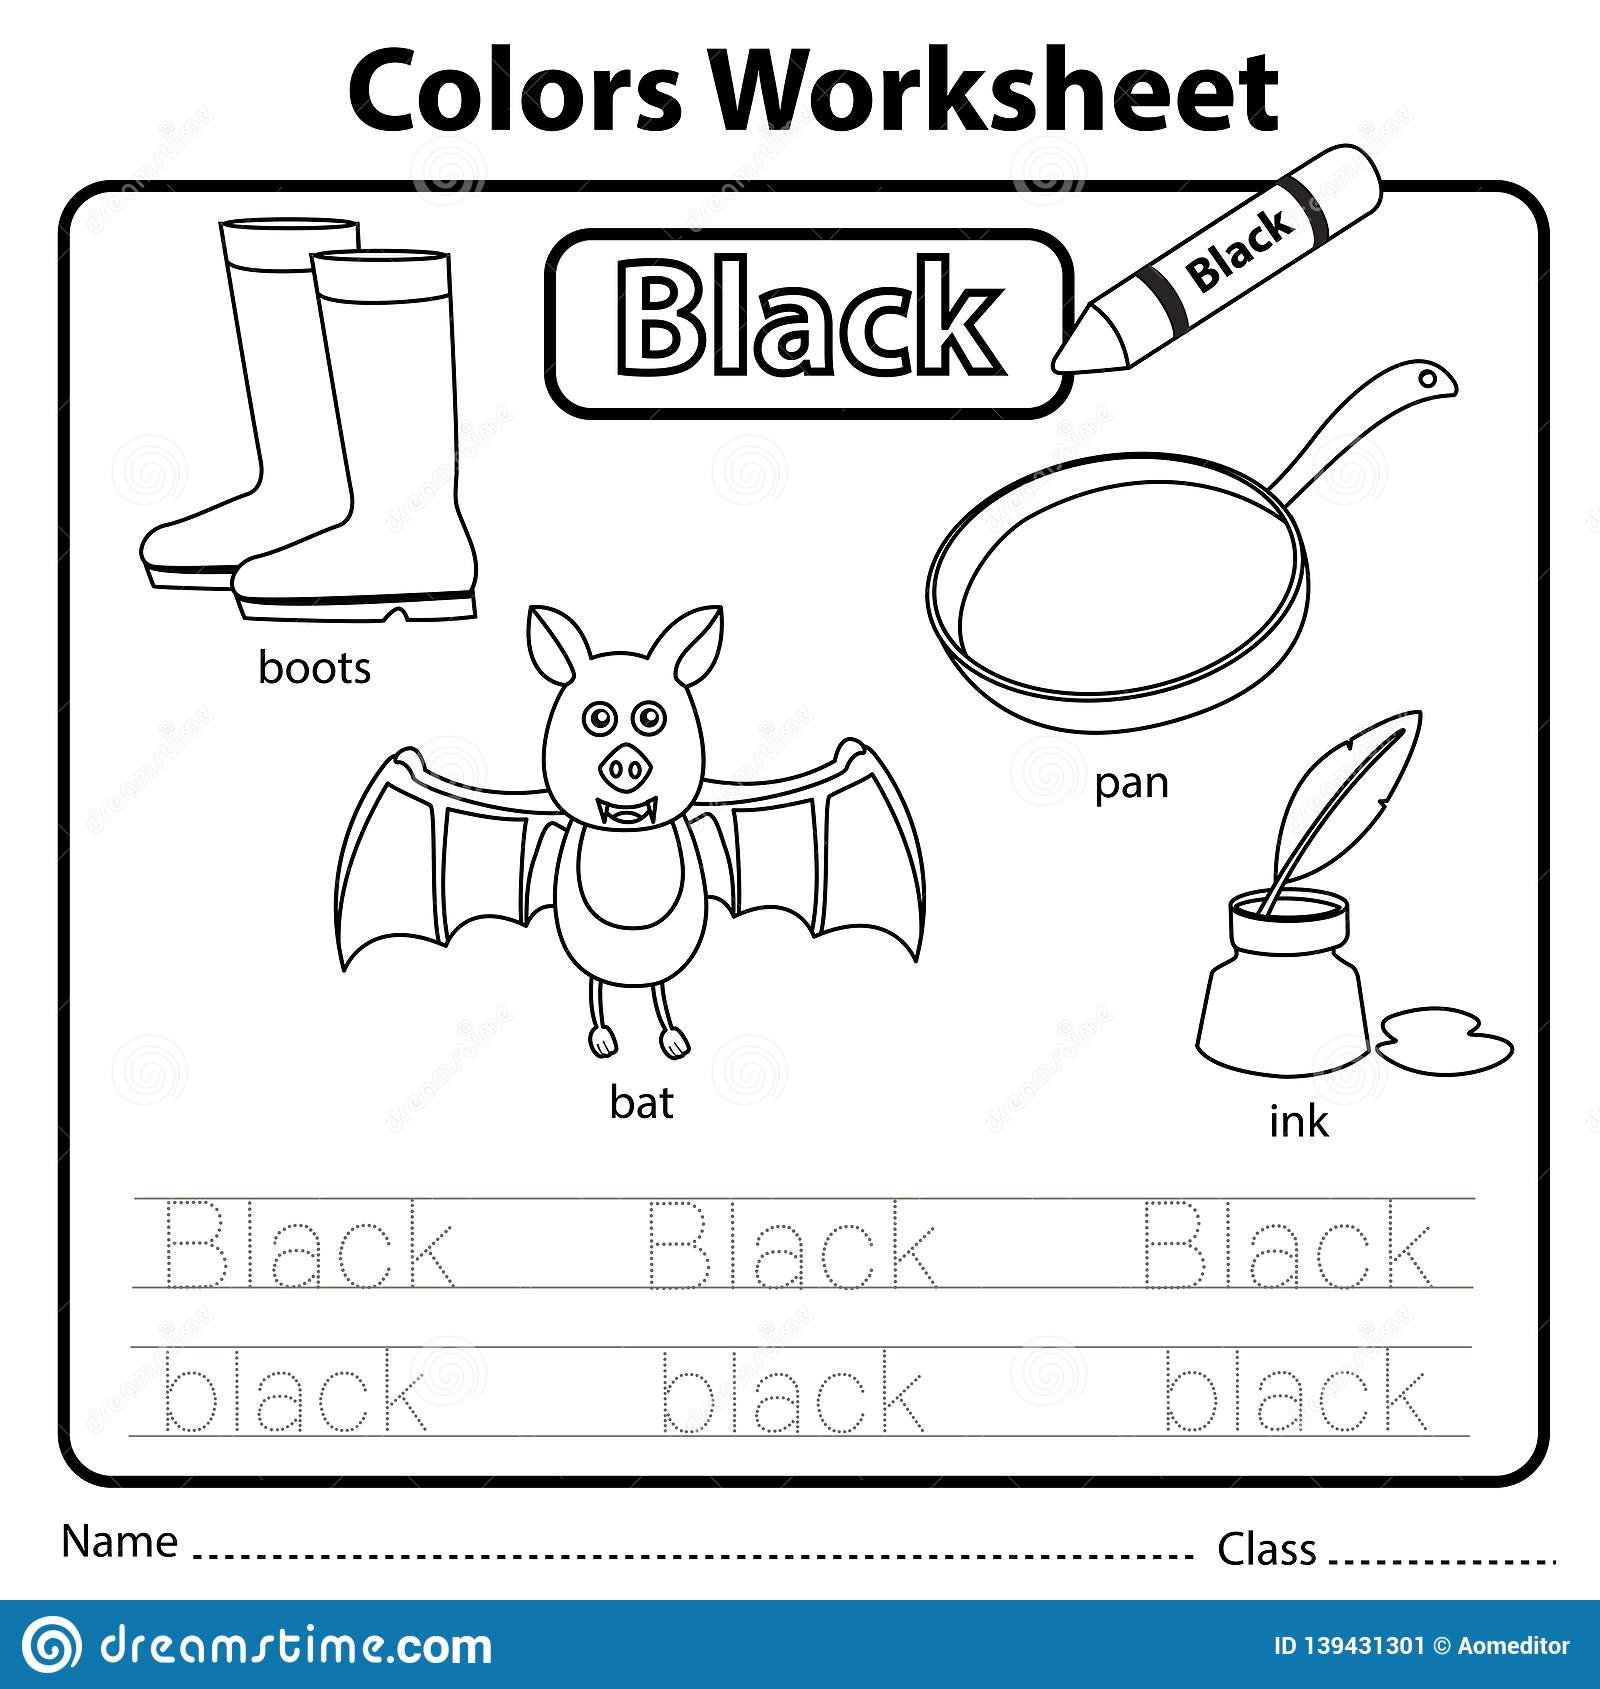 Illustrator Of Color Worksheet Black Stock Vector